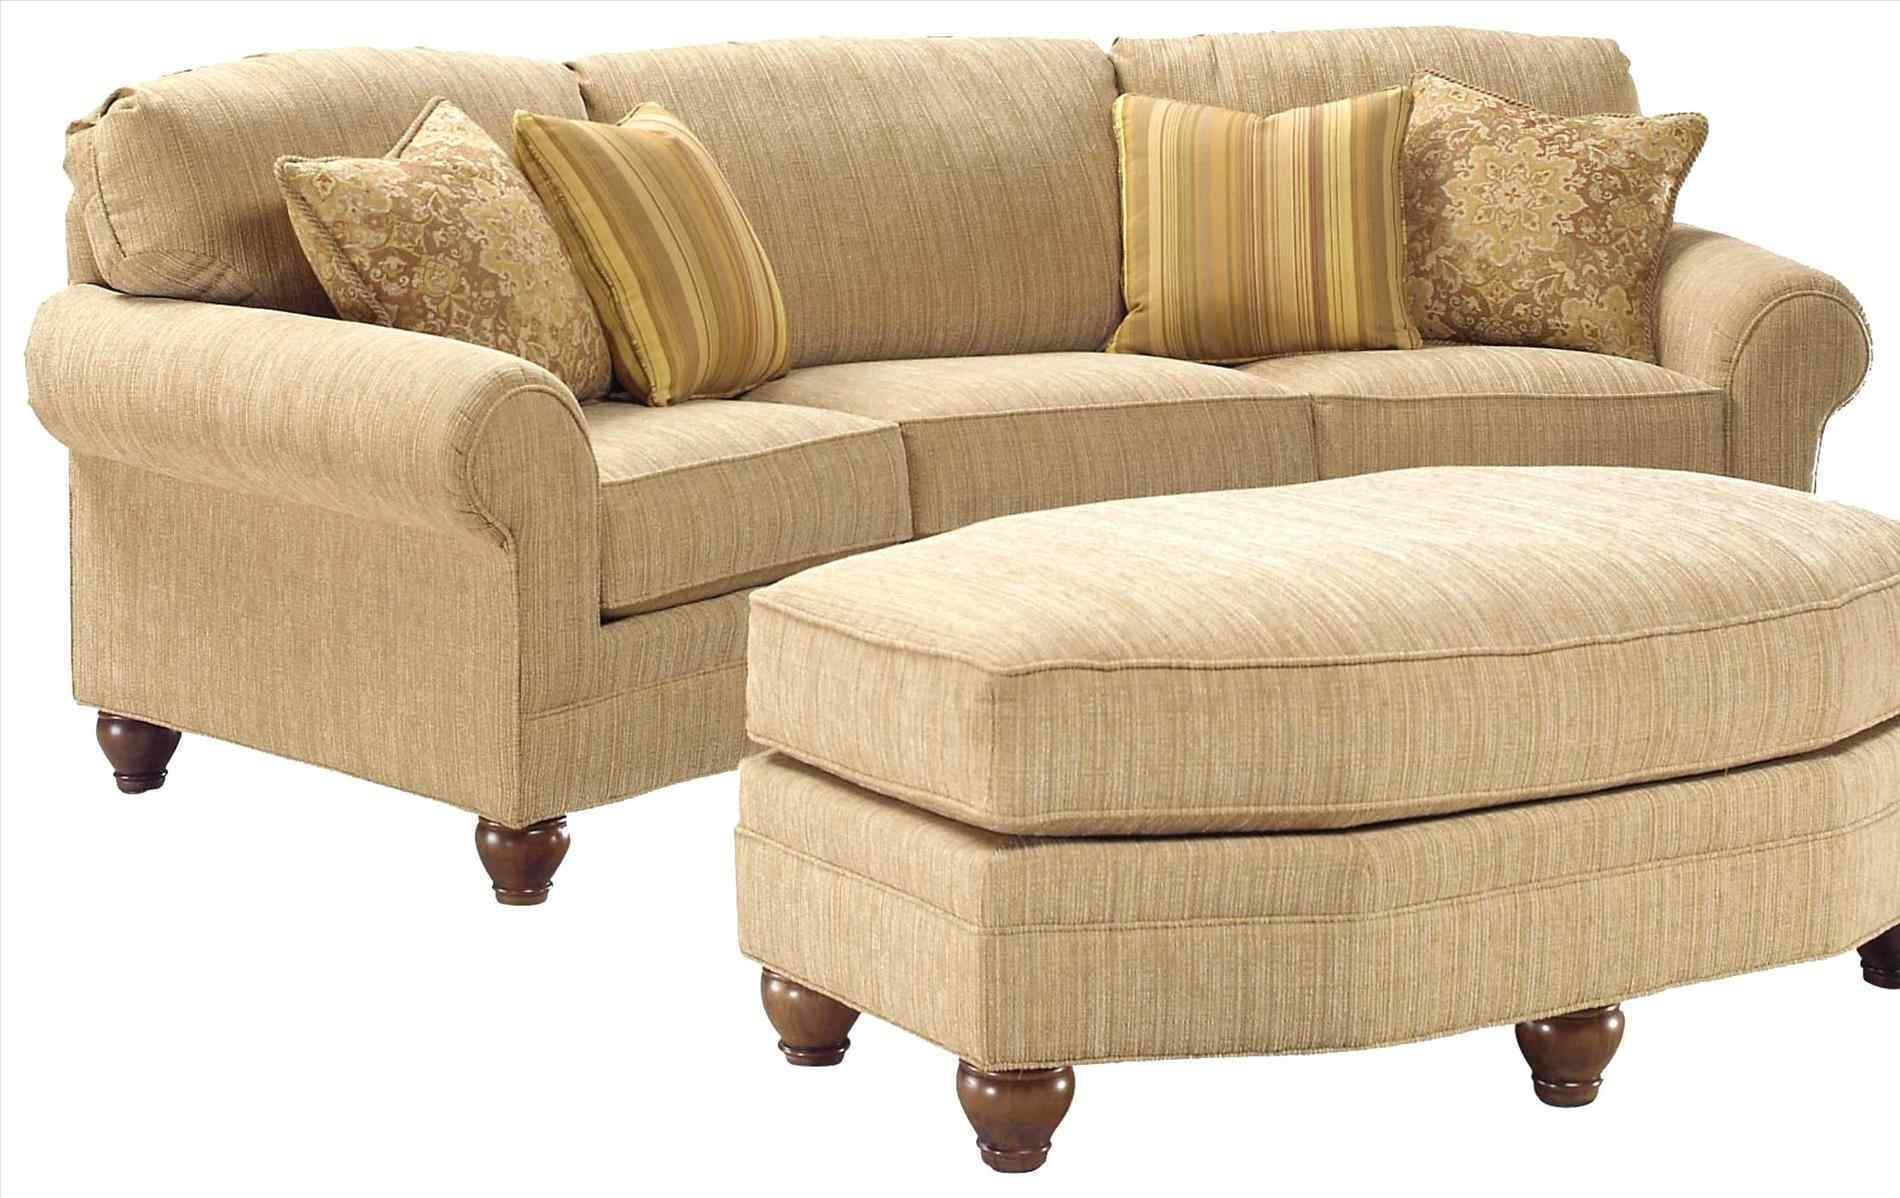 Best Small Spaces Curved Living Room Sectionals Cheap Couches 400 x 300